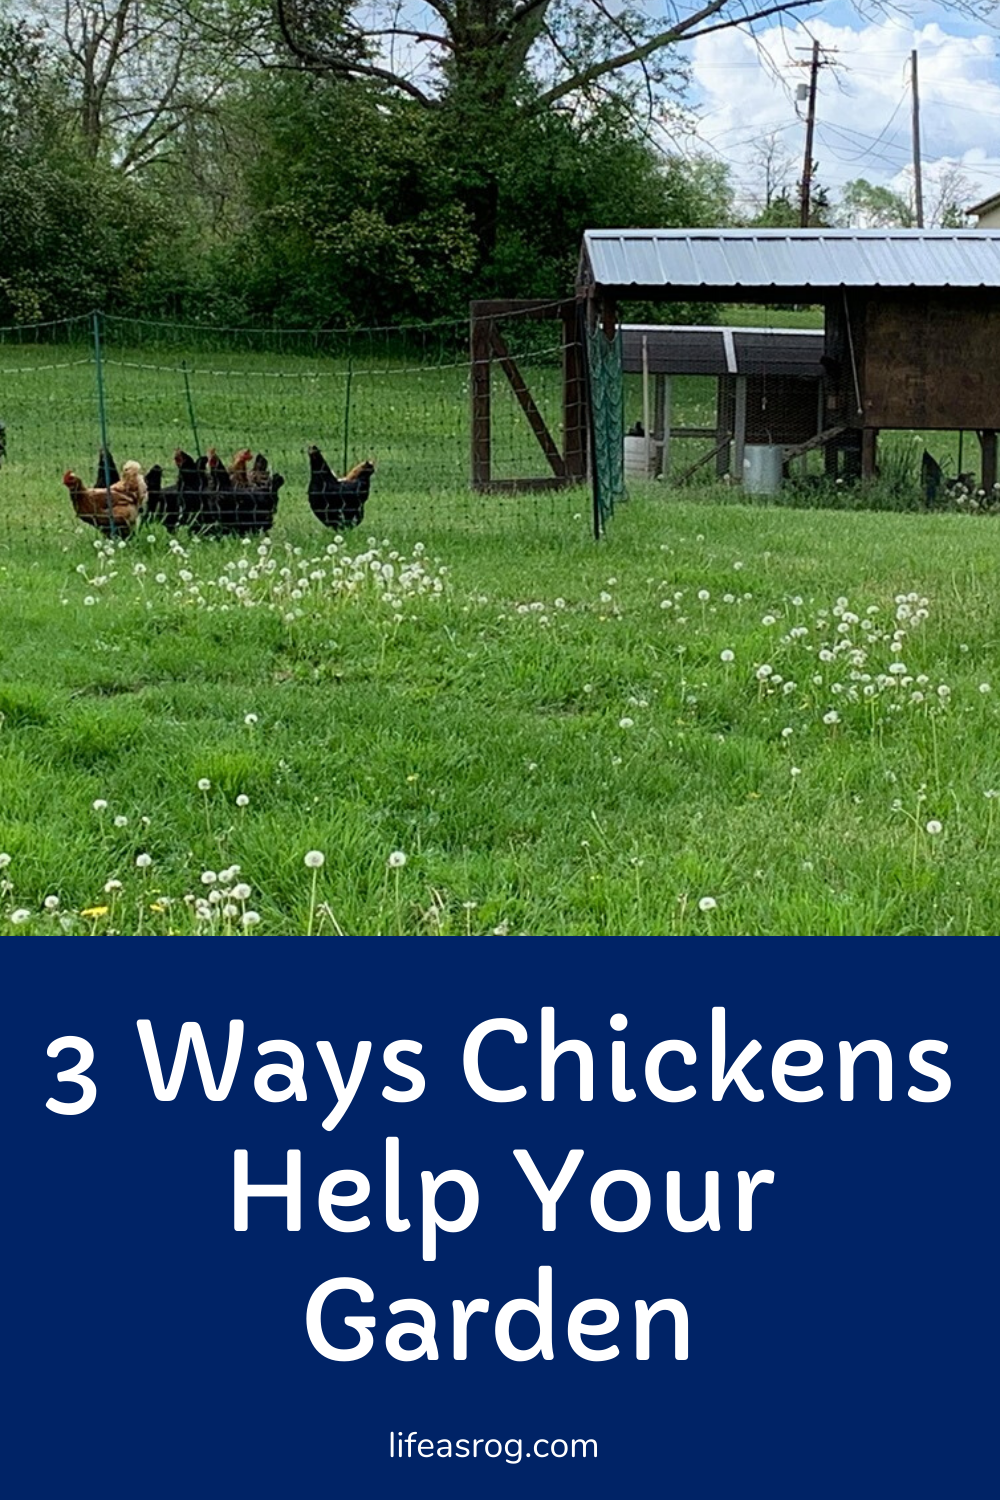 3 Ways Chickens Help Your Garden